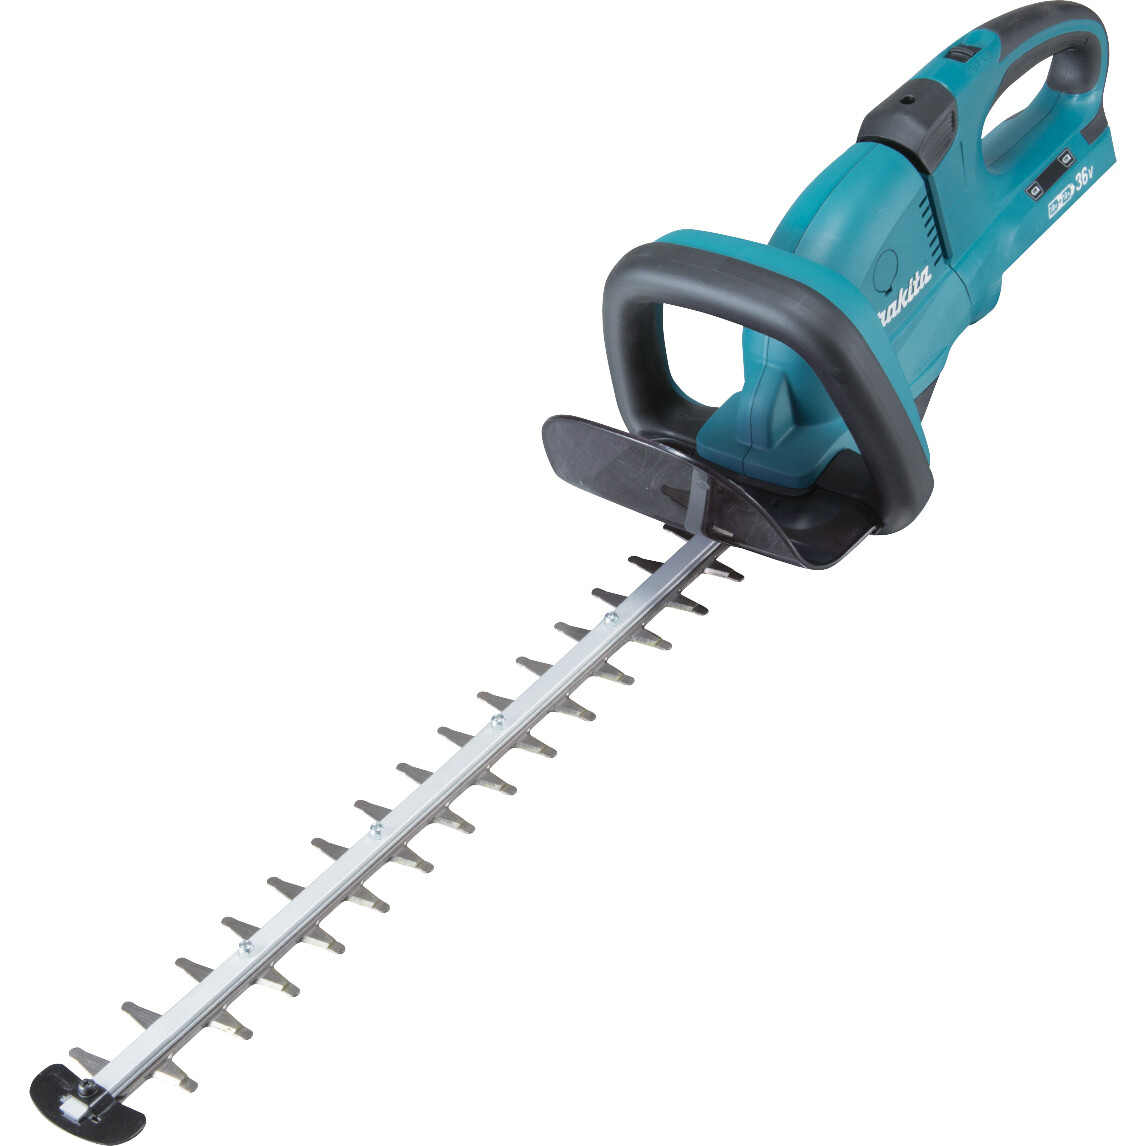 Makita DUH651Z Body Only 36Volt Twin 18v 65cm LXT Hedge Trimmer LXT